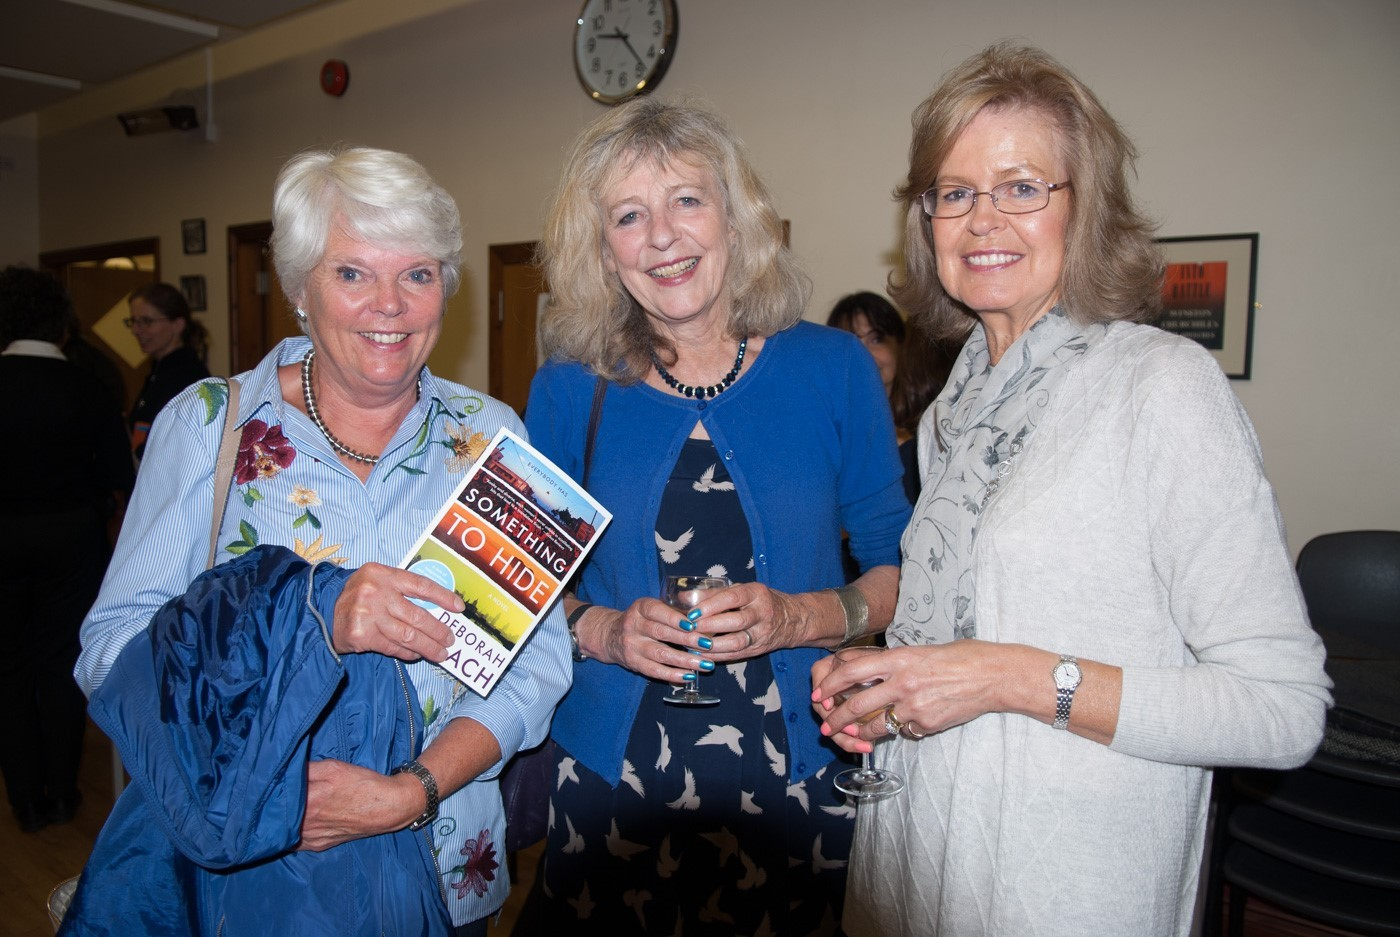 Jan Baker with Deborah Moggach and Sandra Jones after the talk. Photo: Jane Moyle